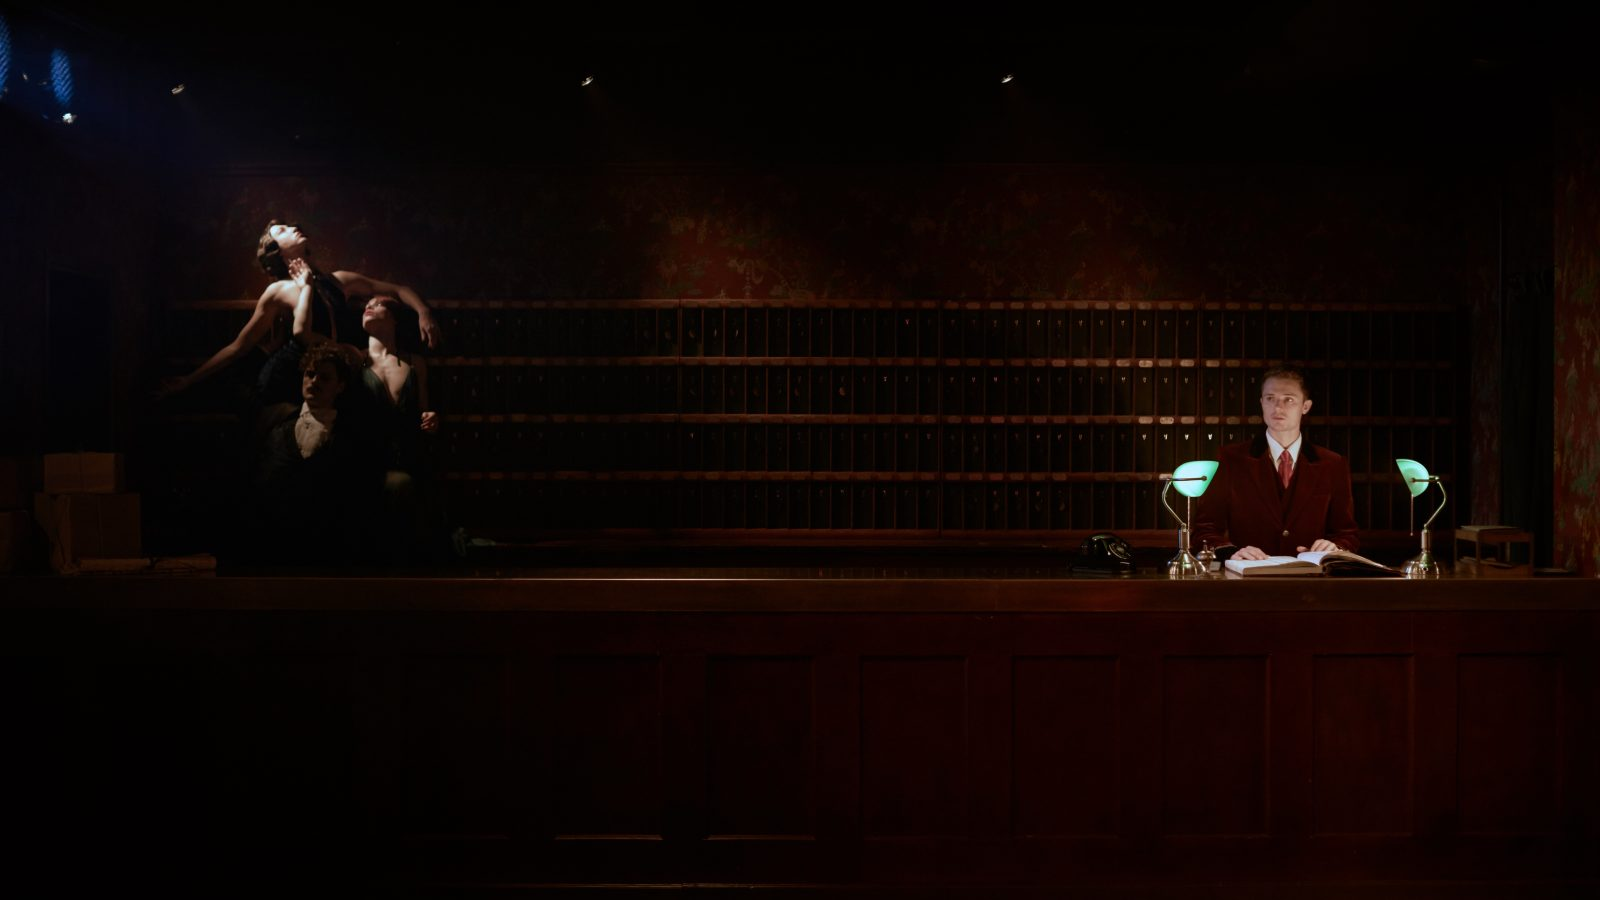 A dark hotel reception. A porter on one side of the image, on the left a group of dancers lift eachother up.